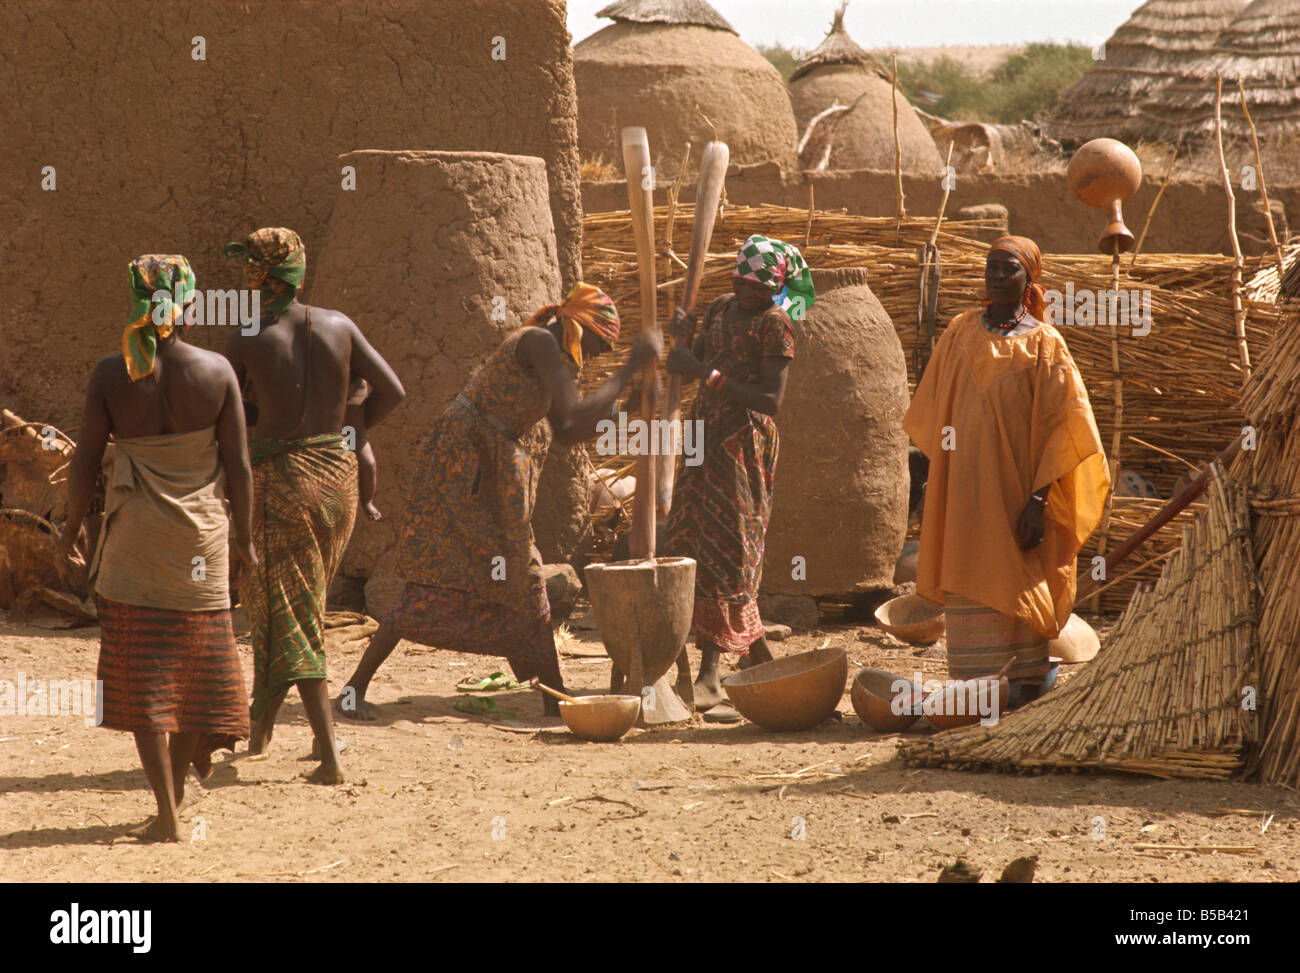 Women pounding millet at Abalak, Niger, West Africa, Africa - Stock Image